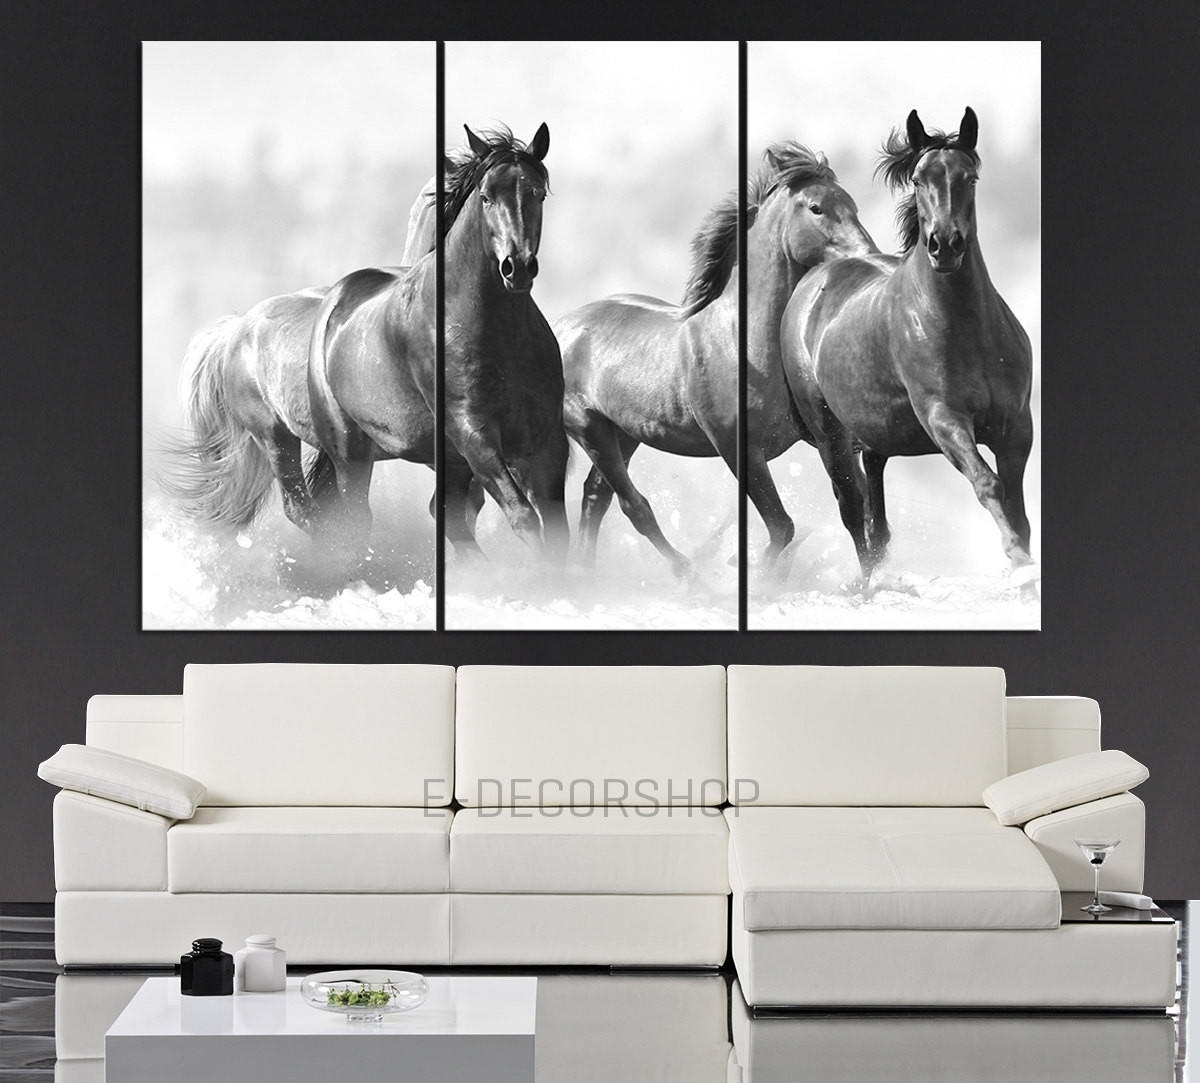 Large Wall Art Running Wild Horses Canvas From Mycanvasprint Intended For Newest Horses Canvas Wall Art (View 9 of 15)